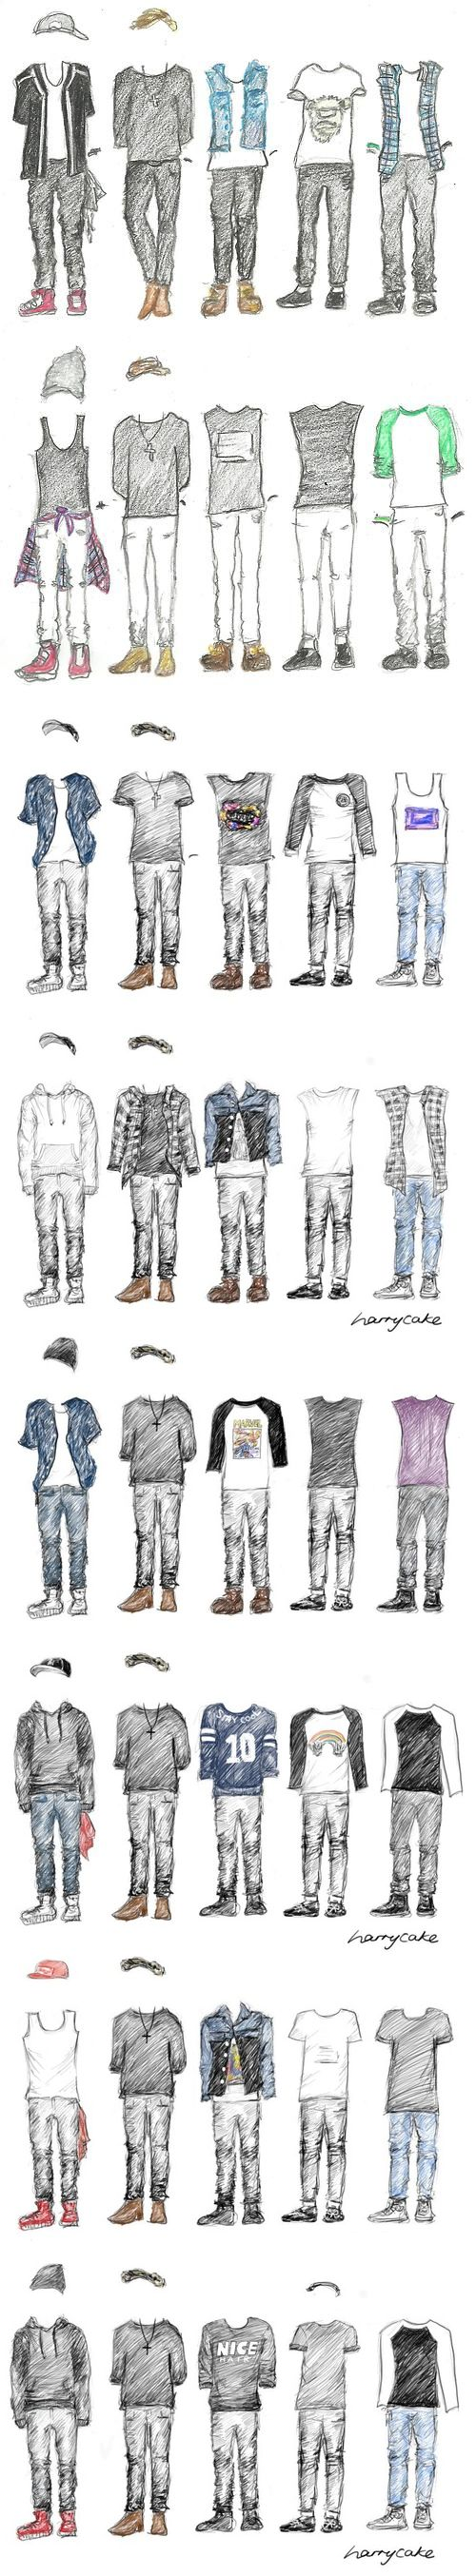 The boys WWA outfits (: seriously you know you have a problem when you know exactly whose outfit is whose (and they are just drawings)